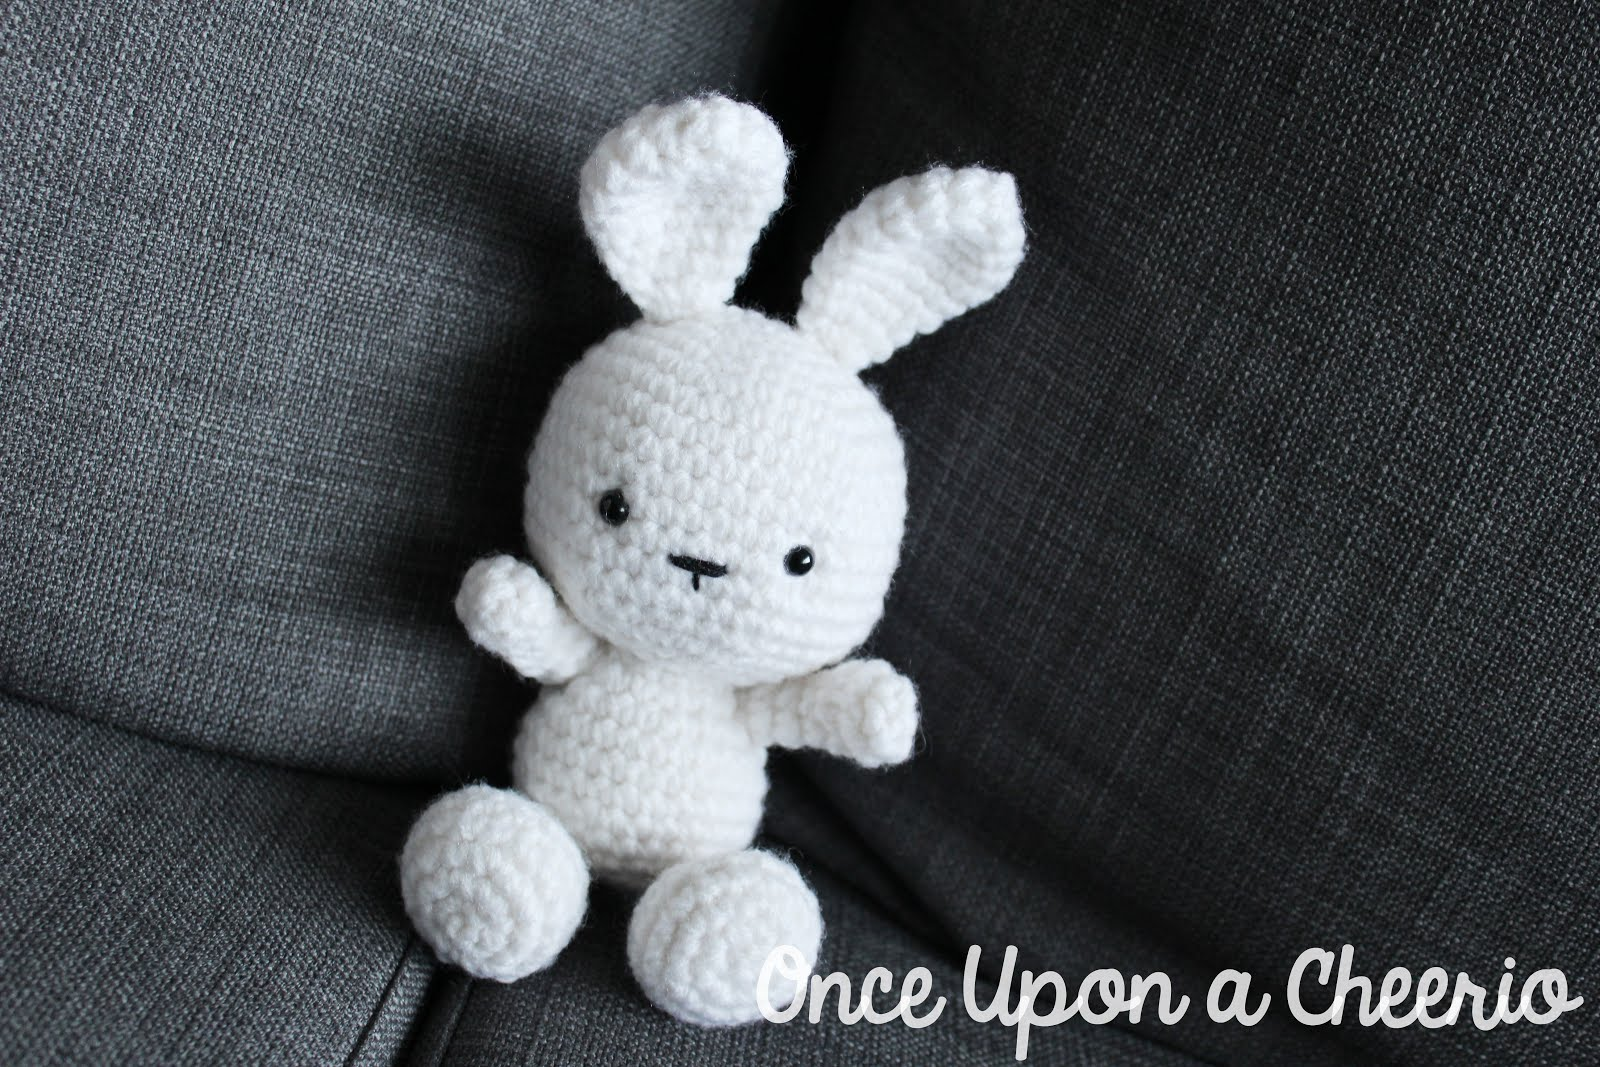 Classic Bunny Amigurumi by Once Upon a Cheerio